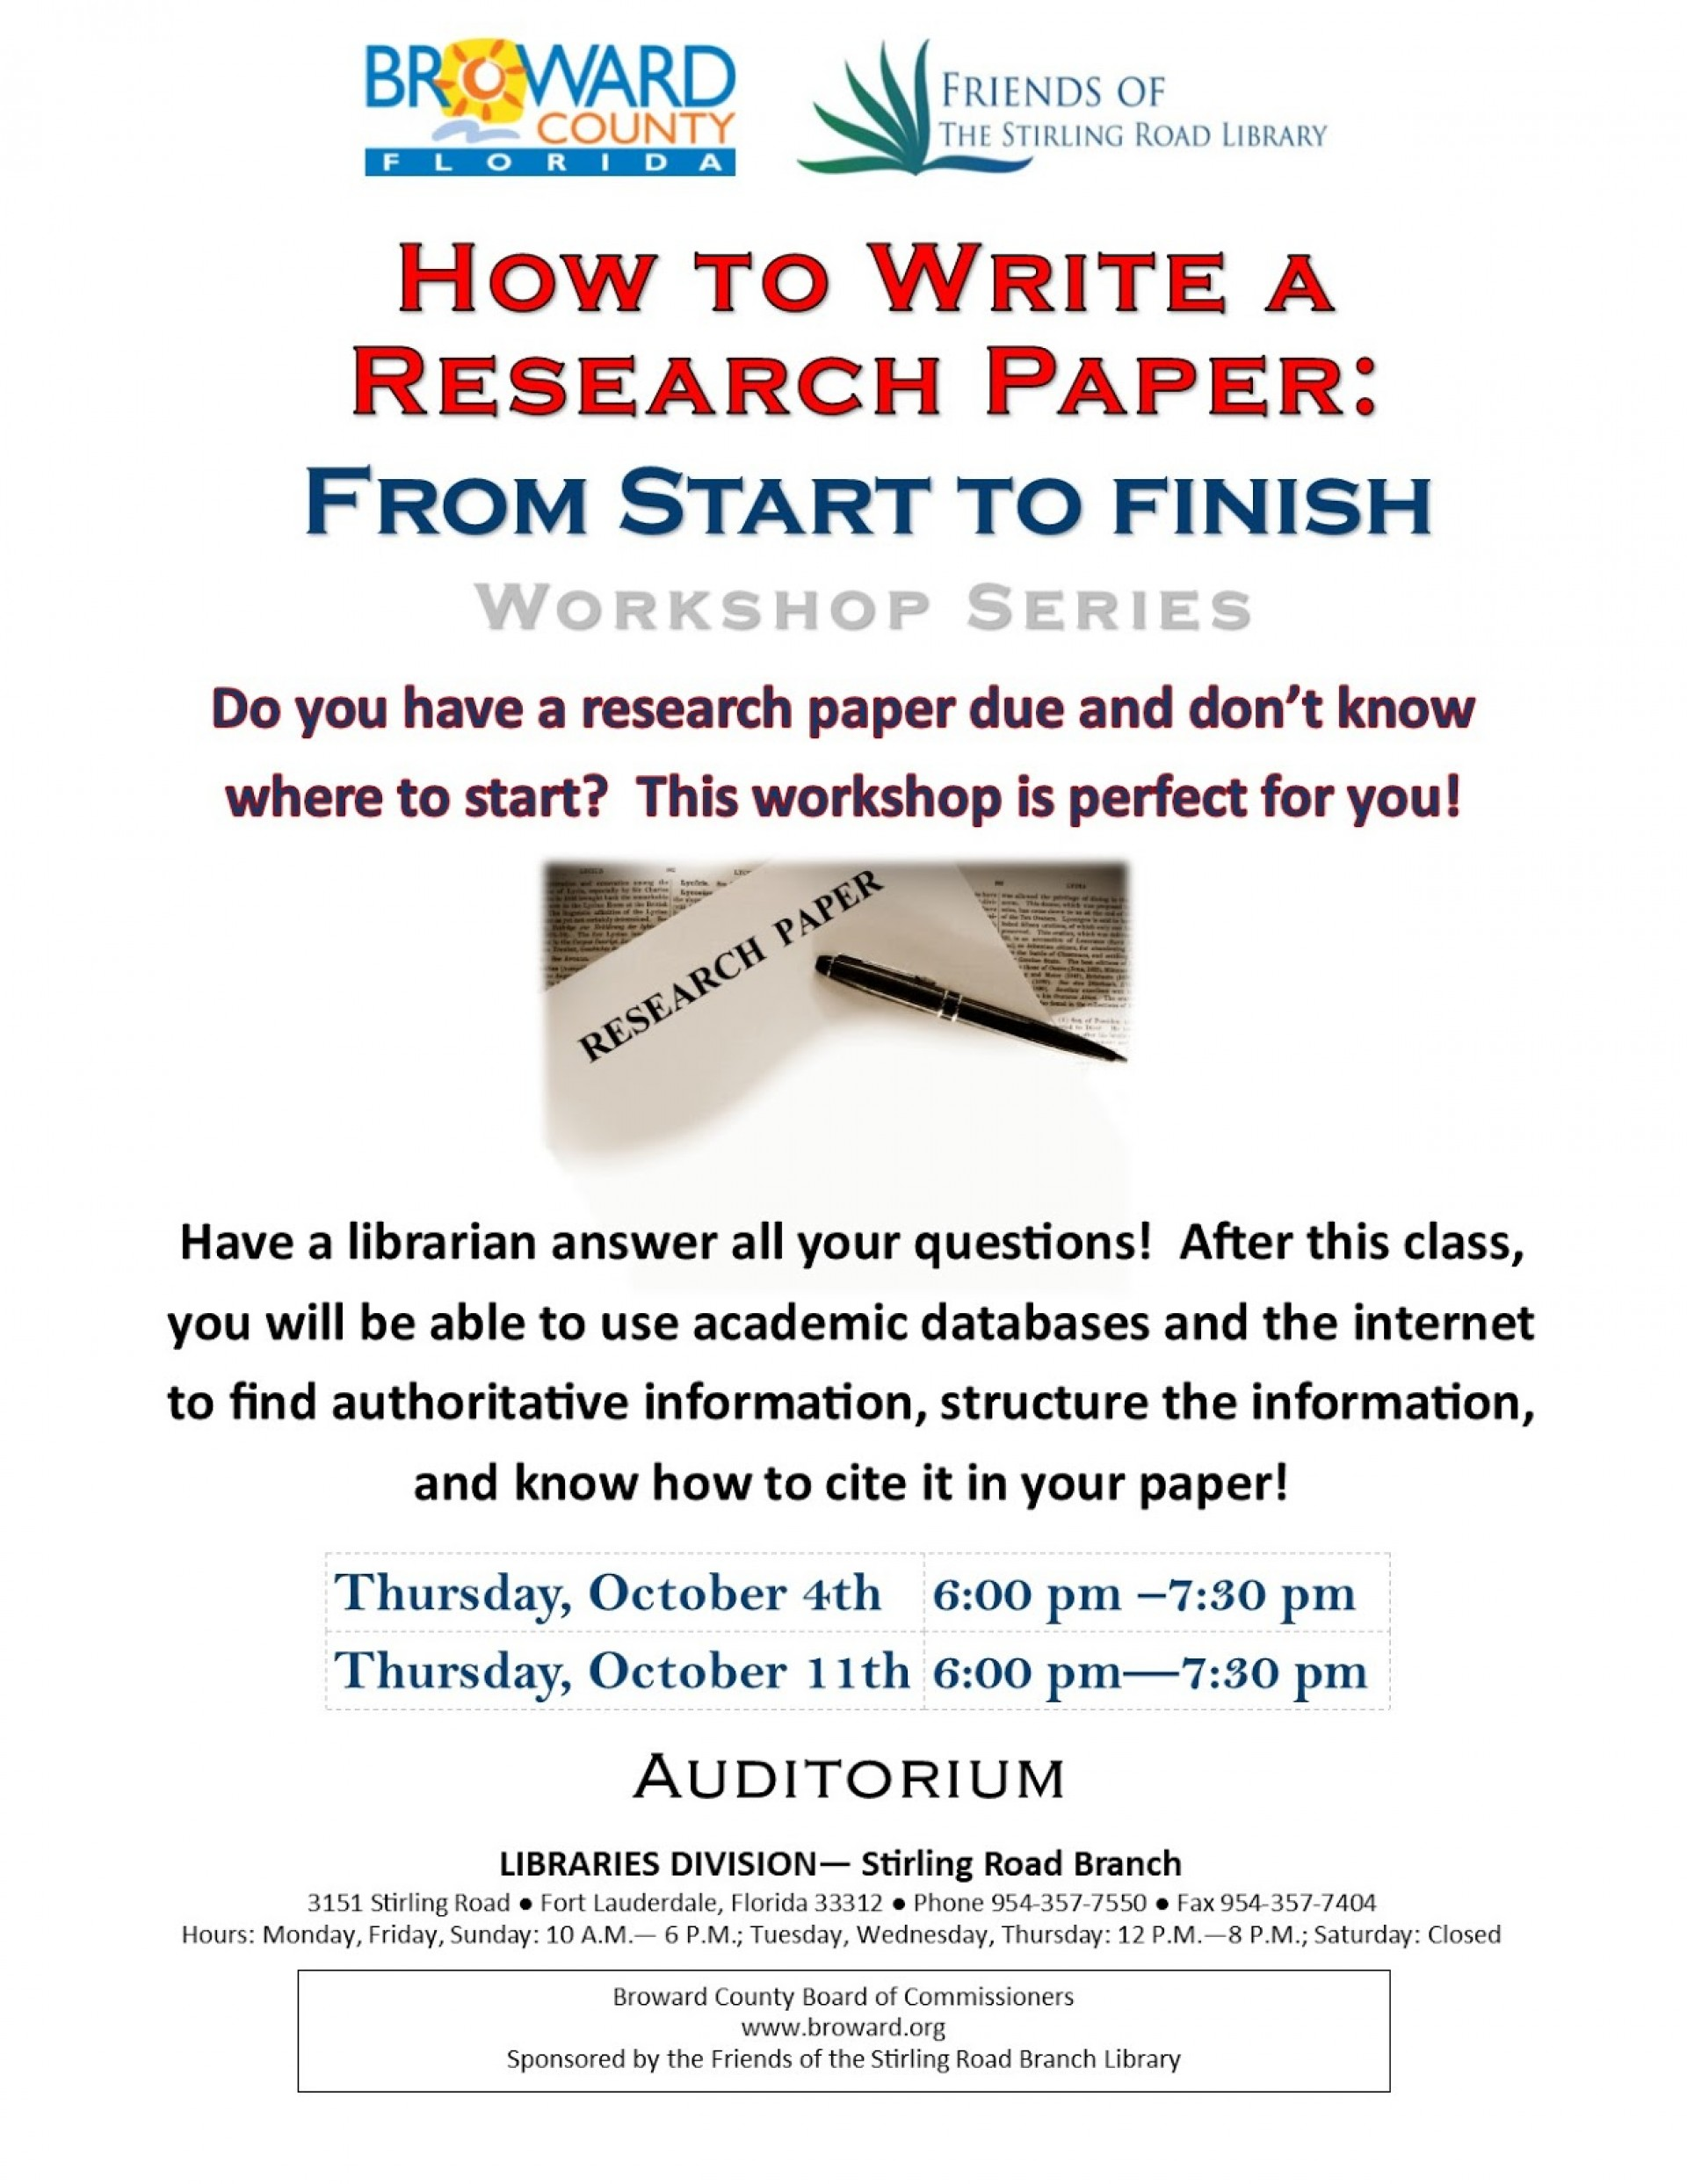 014 How To Write Research Paper Frightening Abstract For Sample Proposal A Summary Of Your 1920